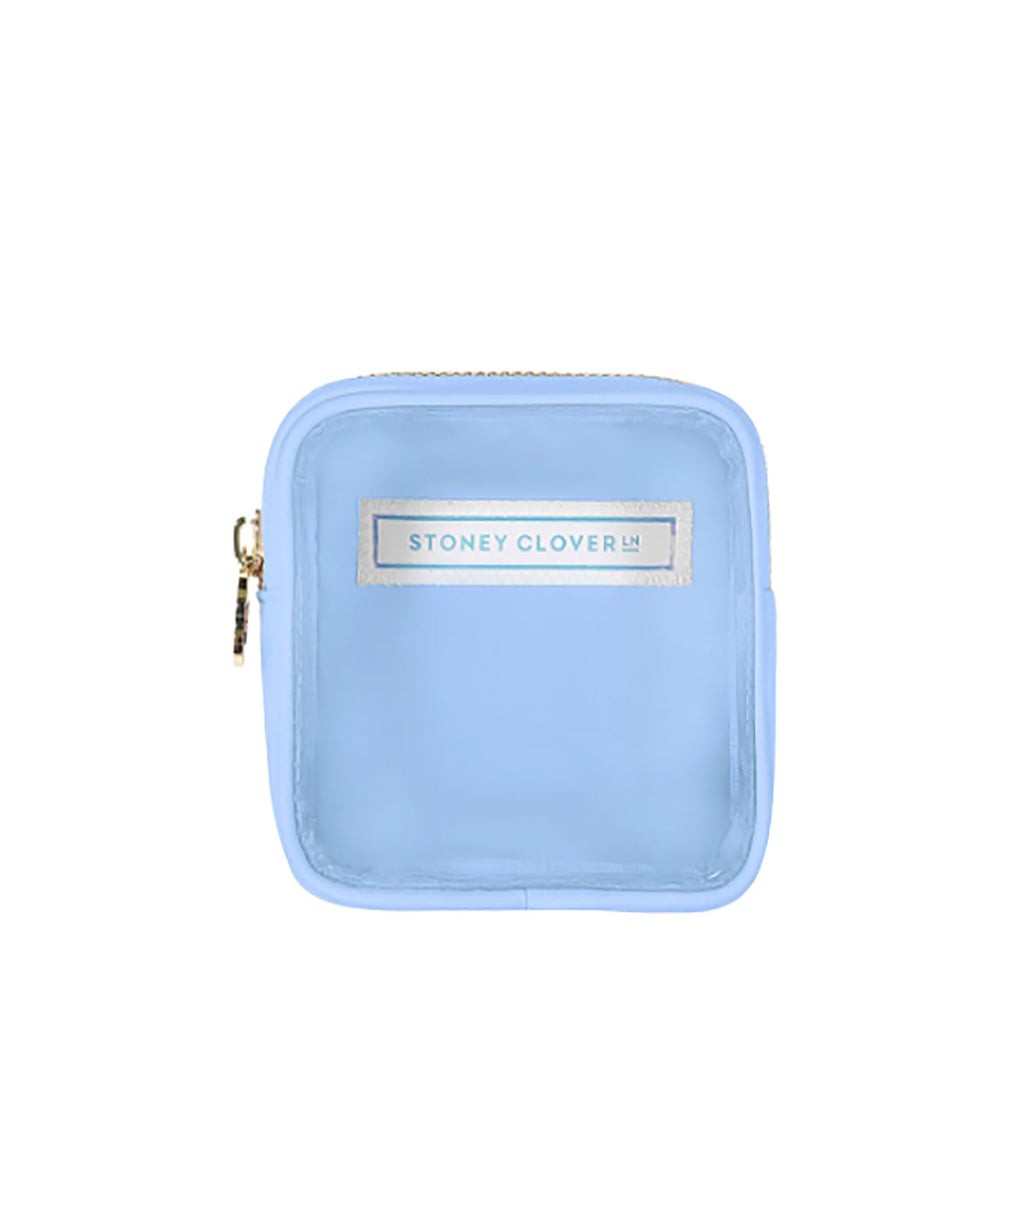 Stoney Clover Mini Periwinkle Clear Pouch